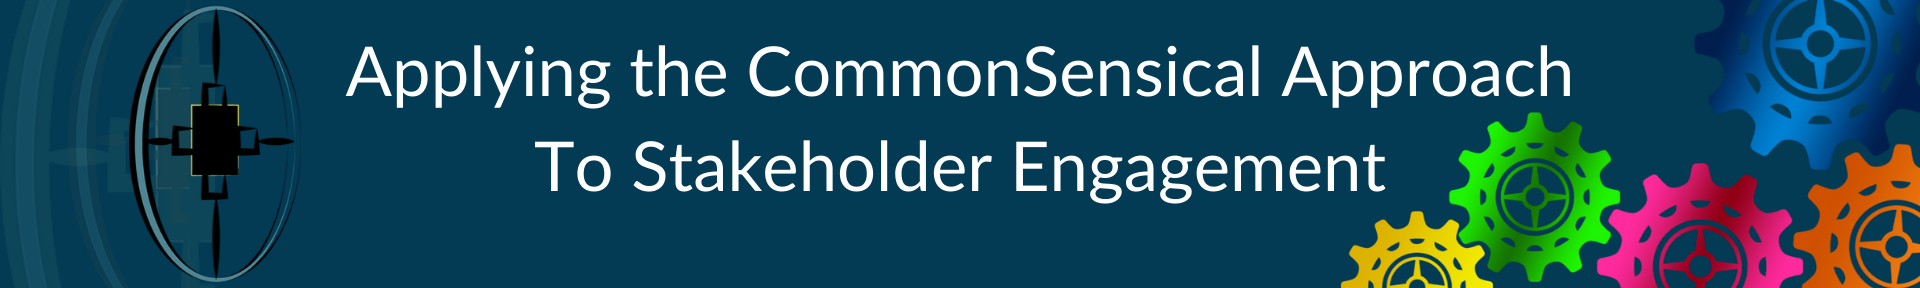 Applying the CommonSensical Approach To Stakeholder Engagement